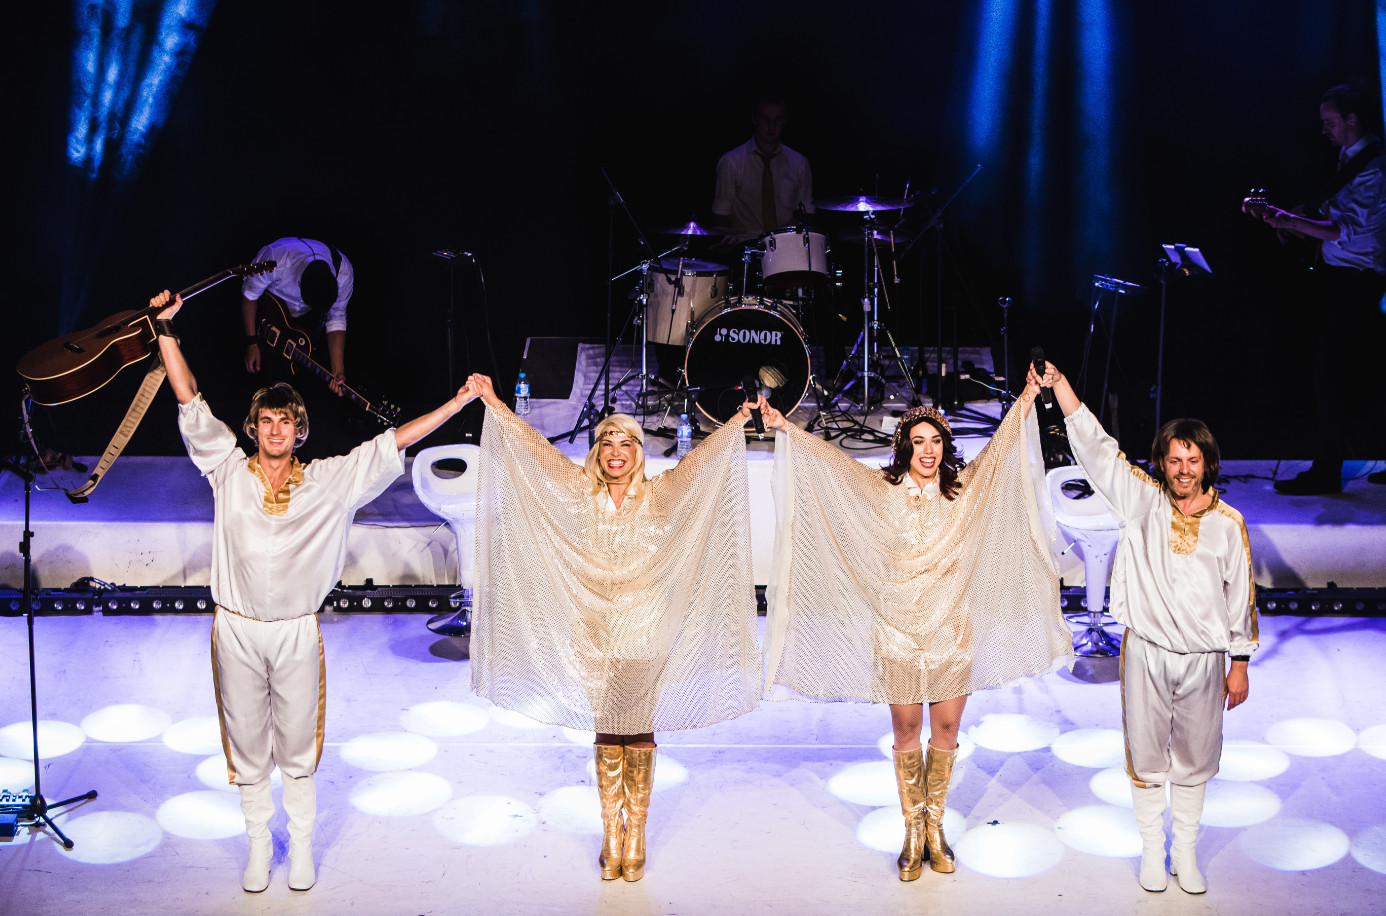 Abba mania, shaftesbury theatre (west end), 21 may 6 june